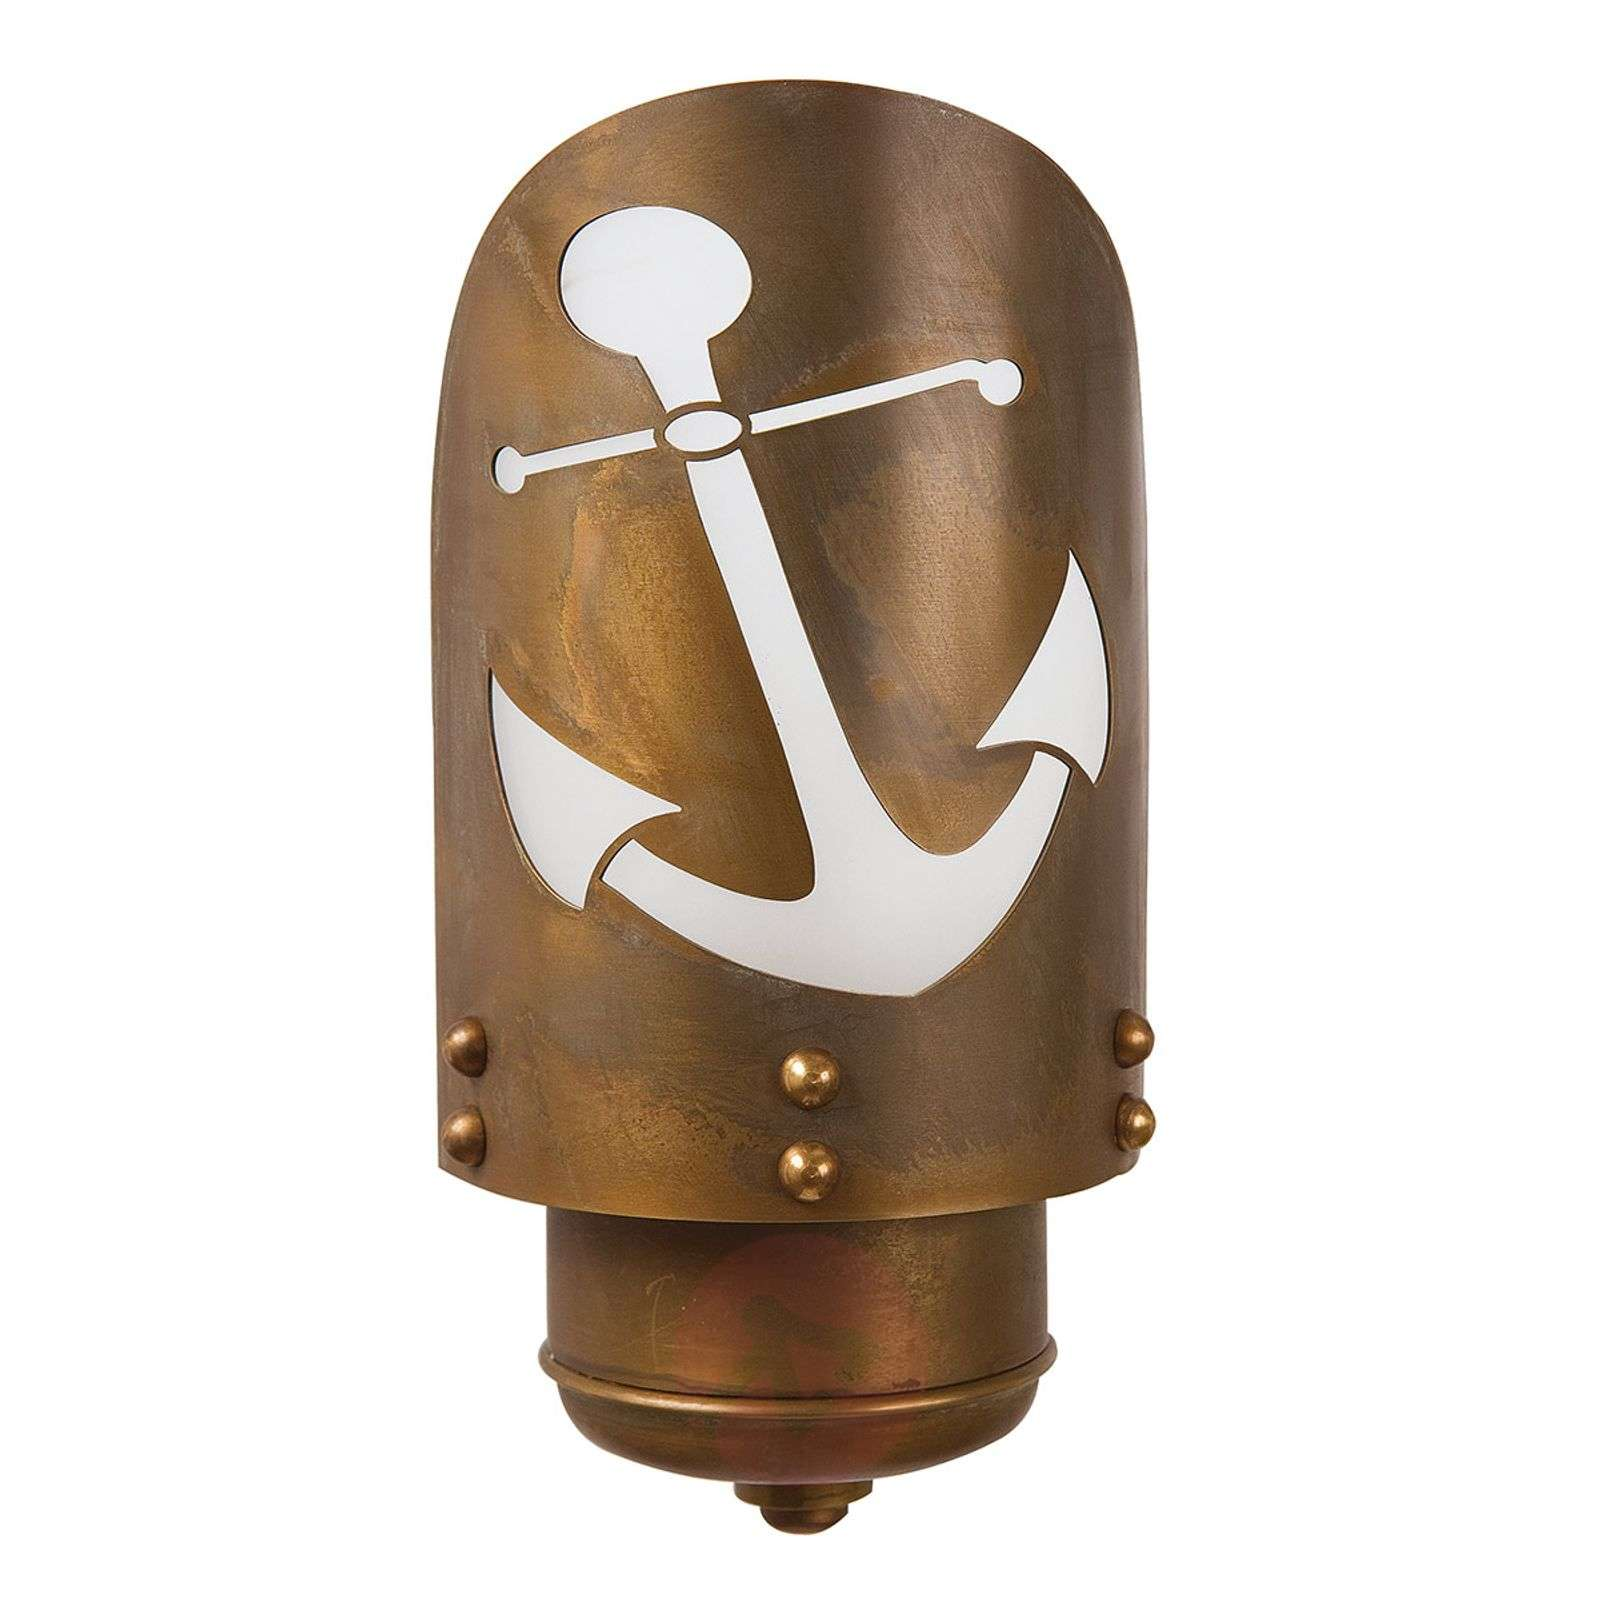 Seawater-res. outdoor wall light Cara with anchor-6515206-01